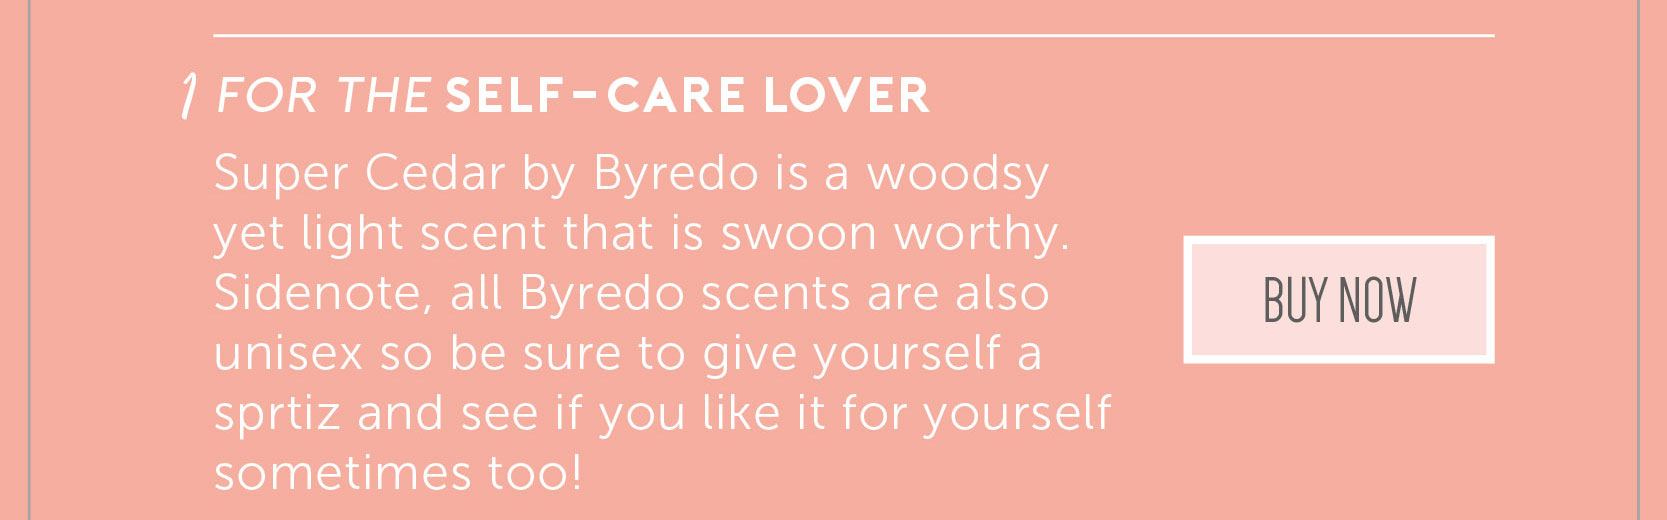 1. For the Self-Care lover. Super Cedar by Byredo is a woodsy yet light scent that is swoon worthy. Sidenote, all Byredo scents are also unisex so be sure to give yourself a spritz and see if you like it for yourself sometimes too! Click to buy now!